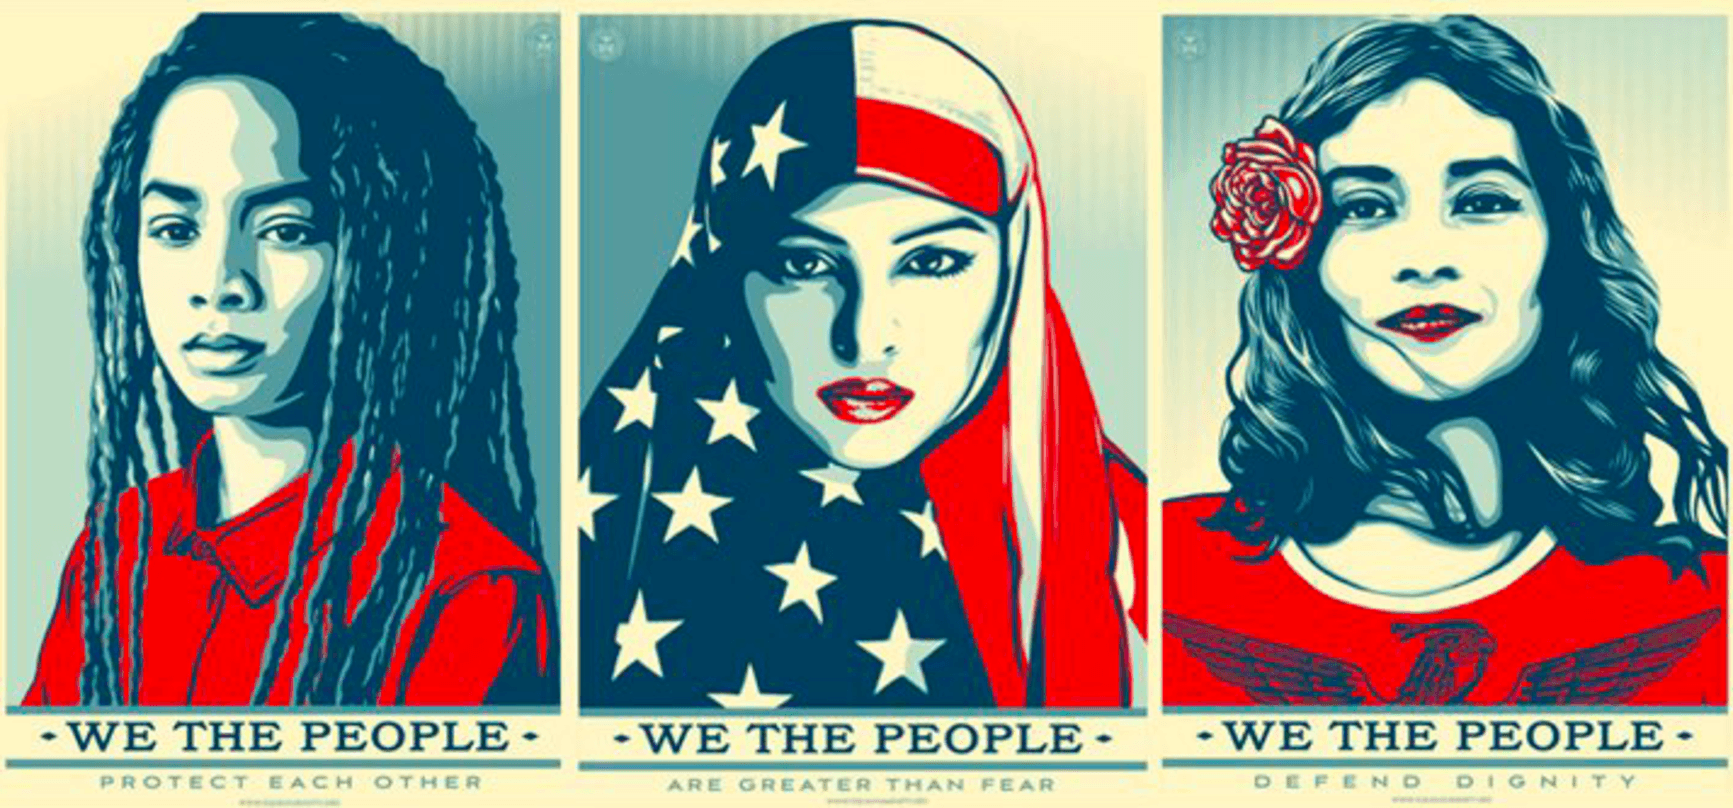 SHEPARD FAIREY OBEY GIANT WE THE PEOPLE GREATER THAN FEAR PRINT POSTER TRUMP